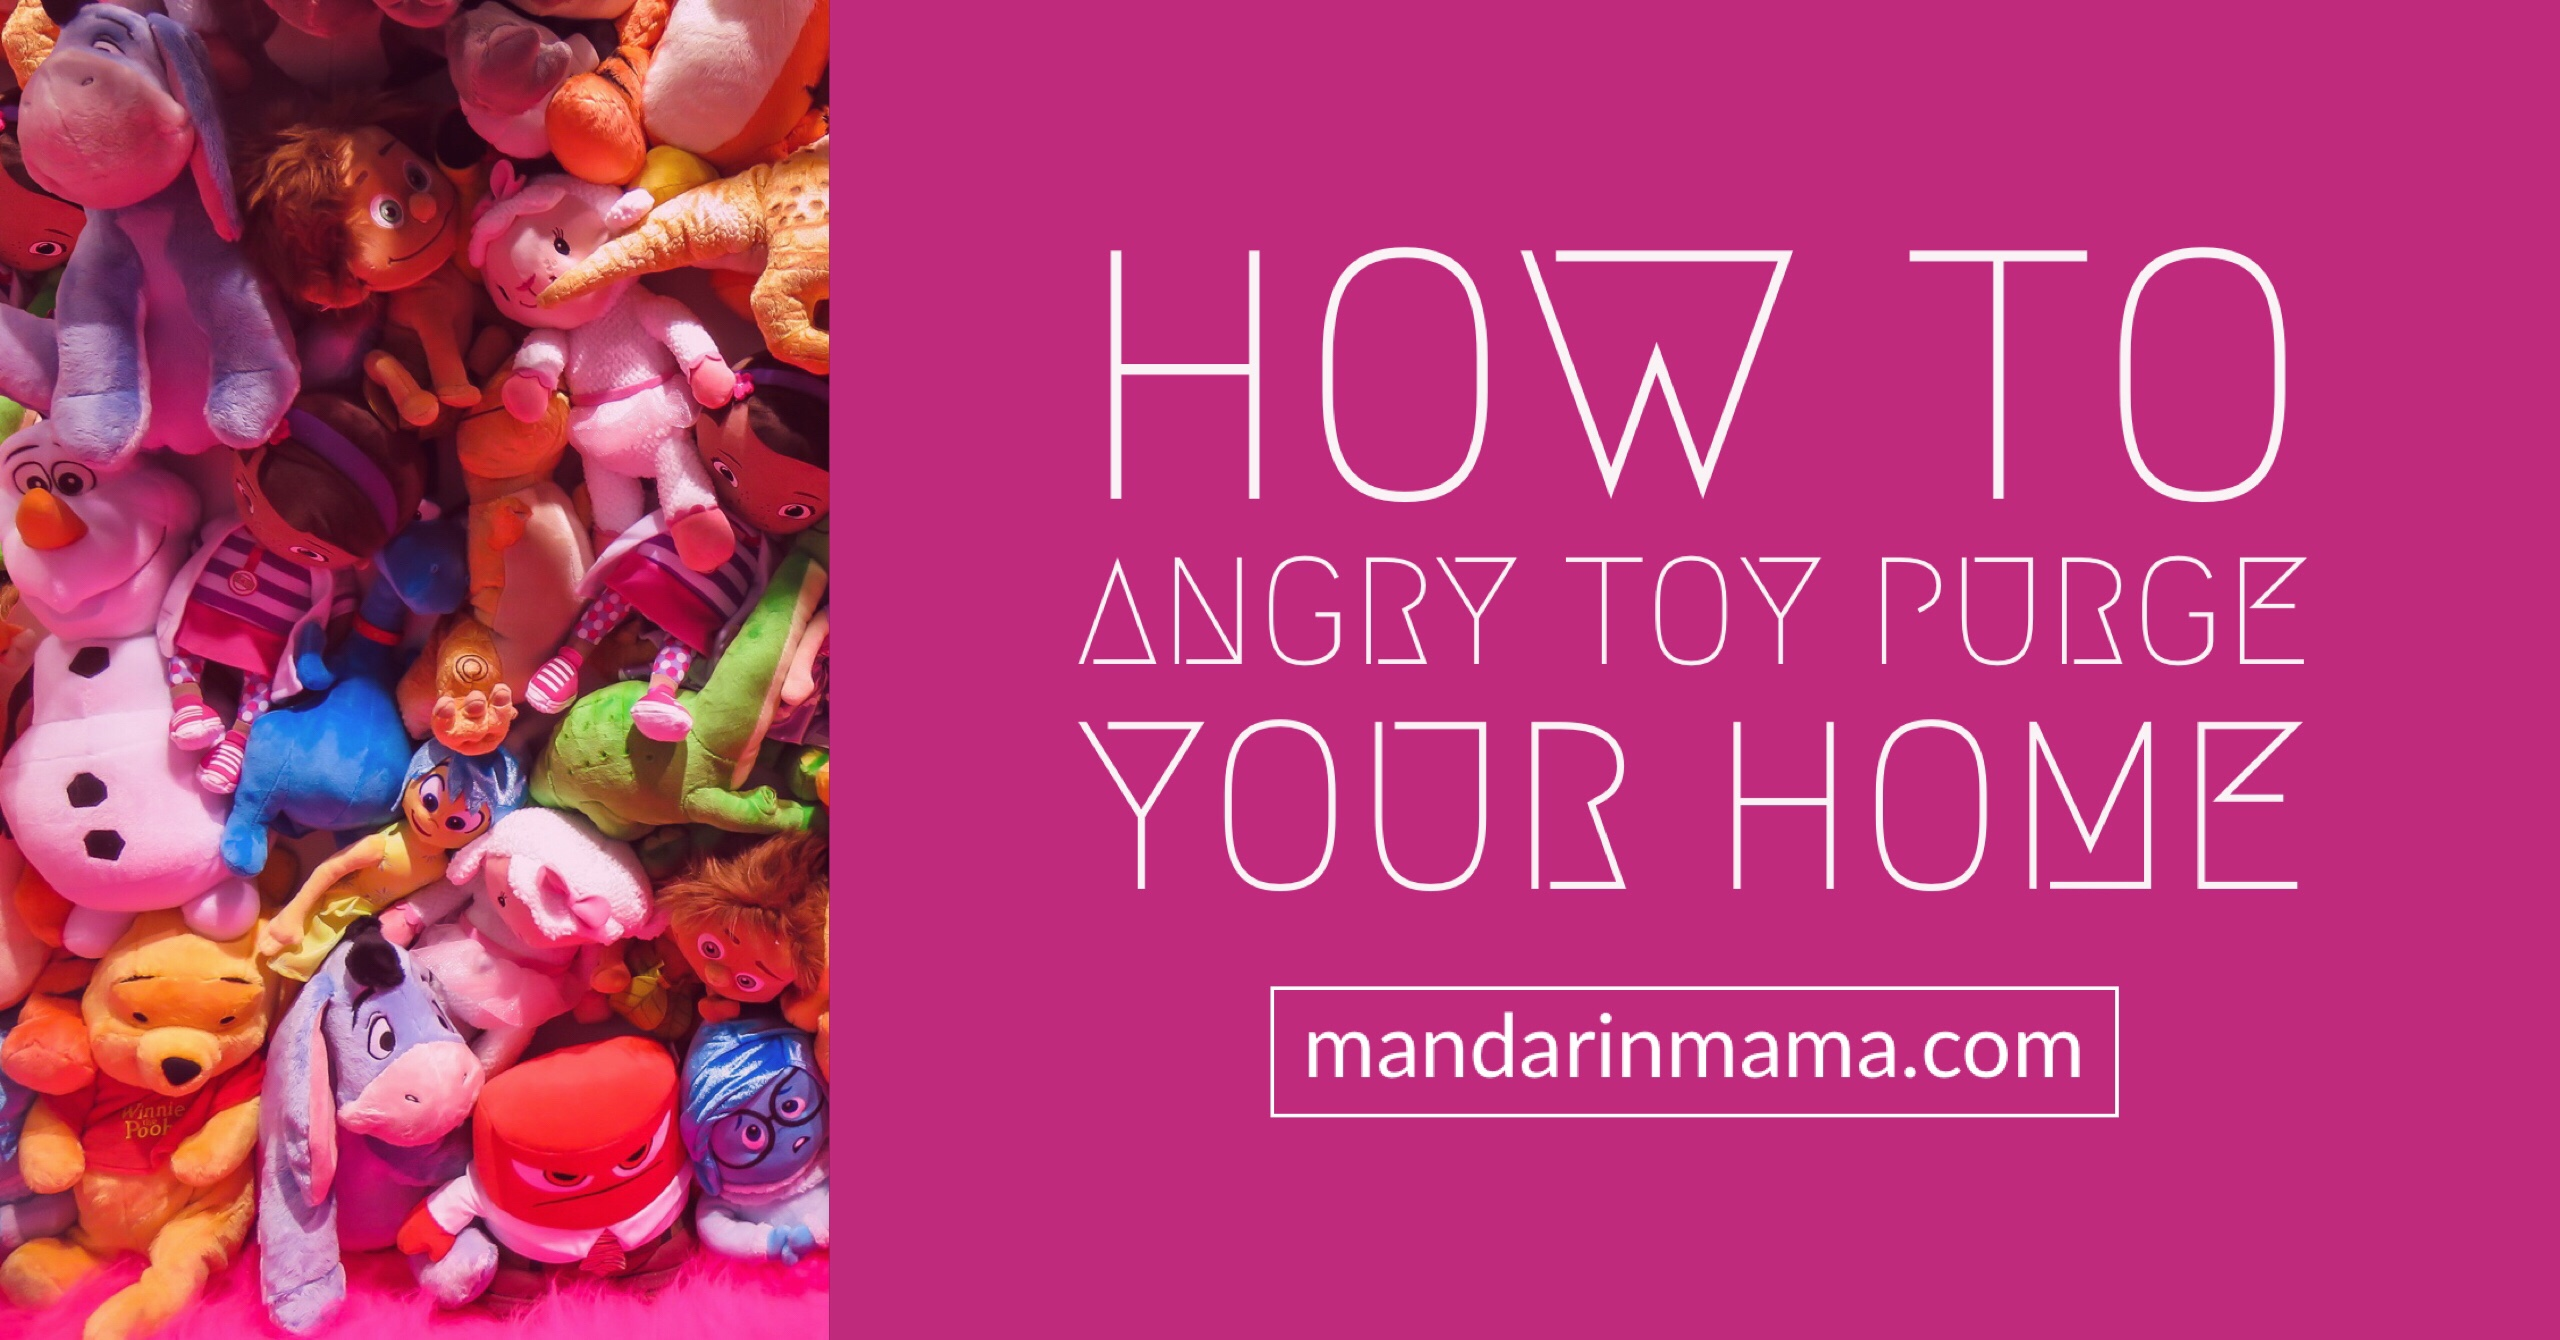 How to Angry Toy Purge Your Home